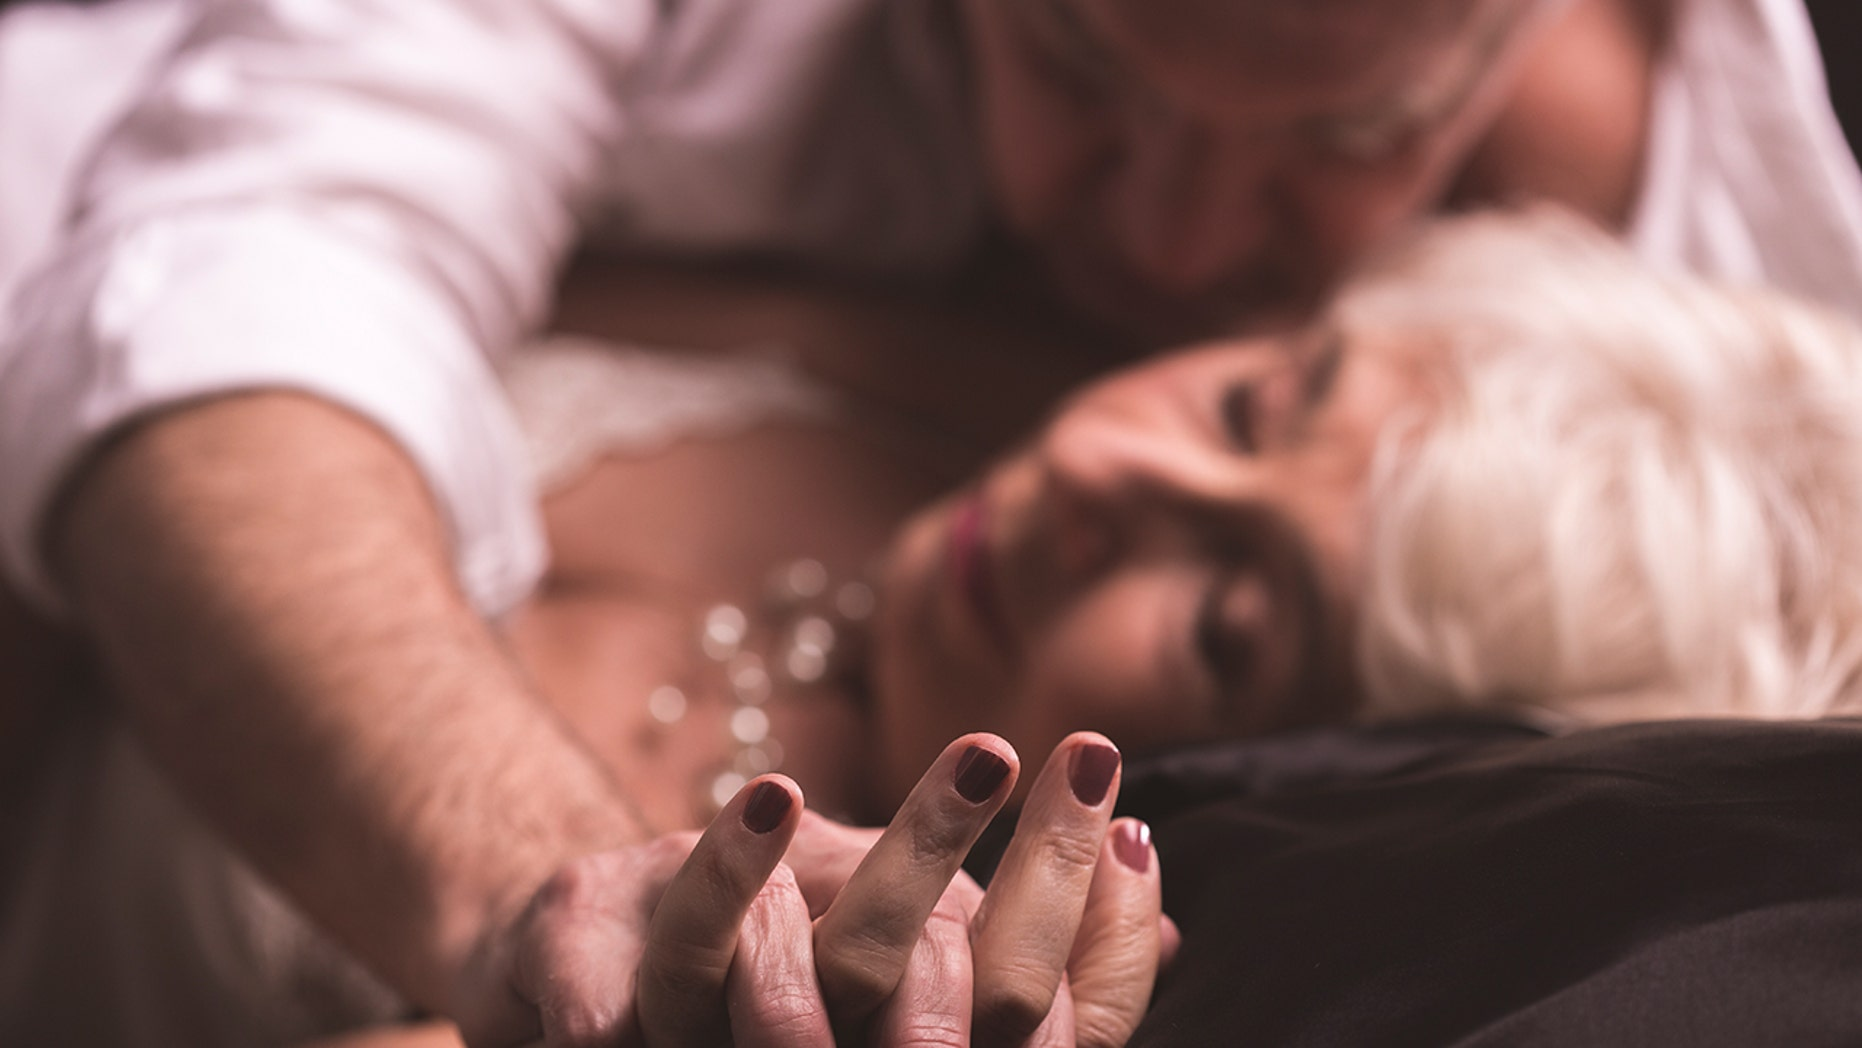 A new study shows having more sex might help keep you sharper in your old age